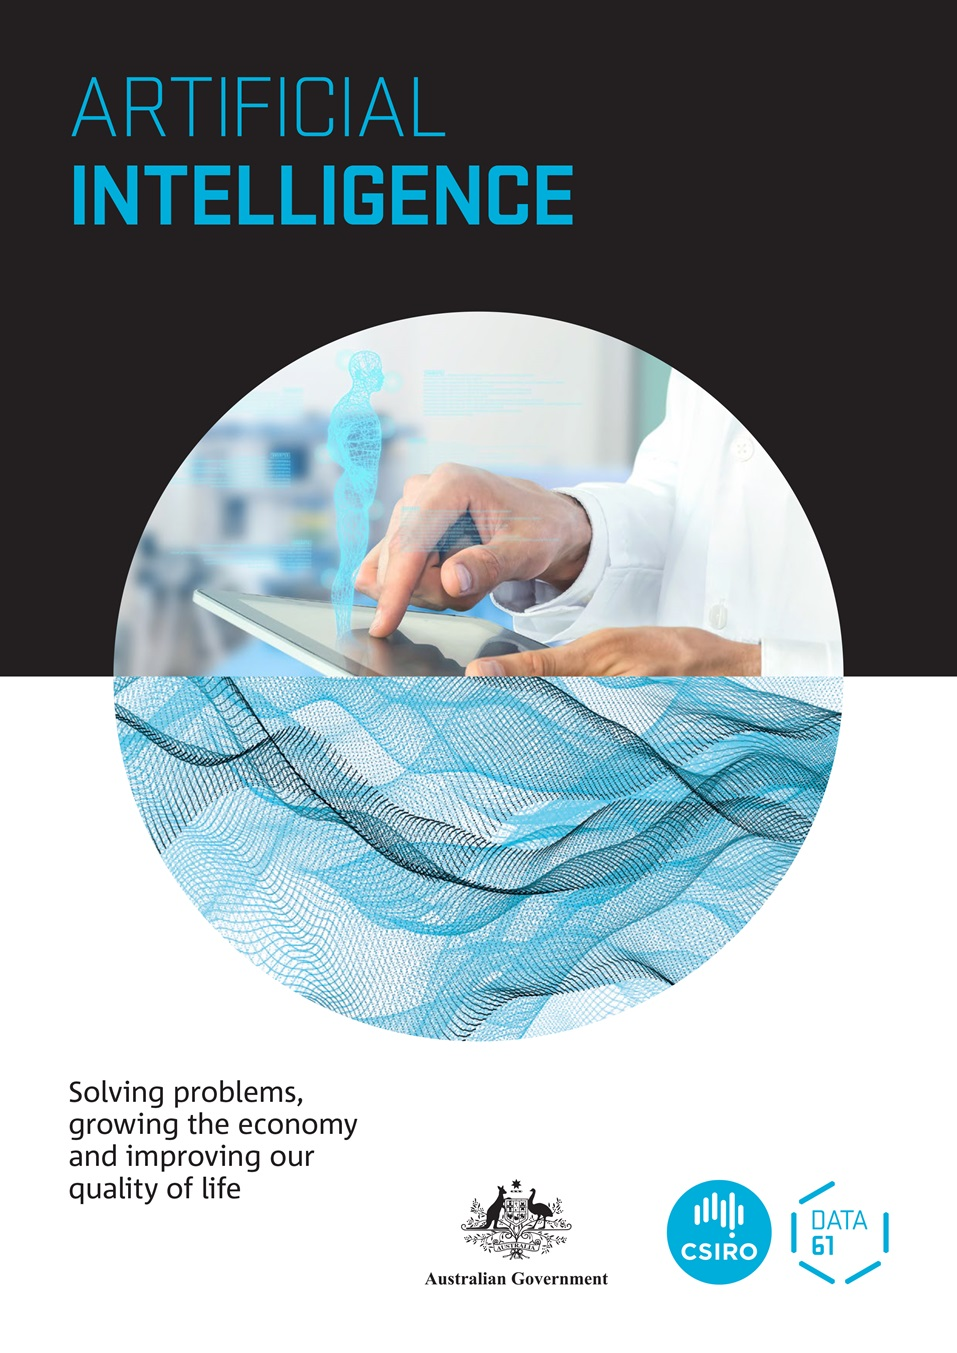 Cover image of the Artificial Intelligence report.